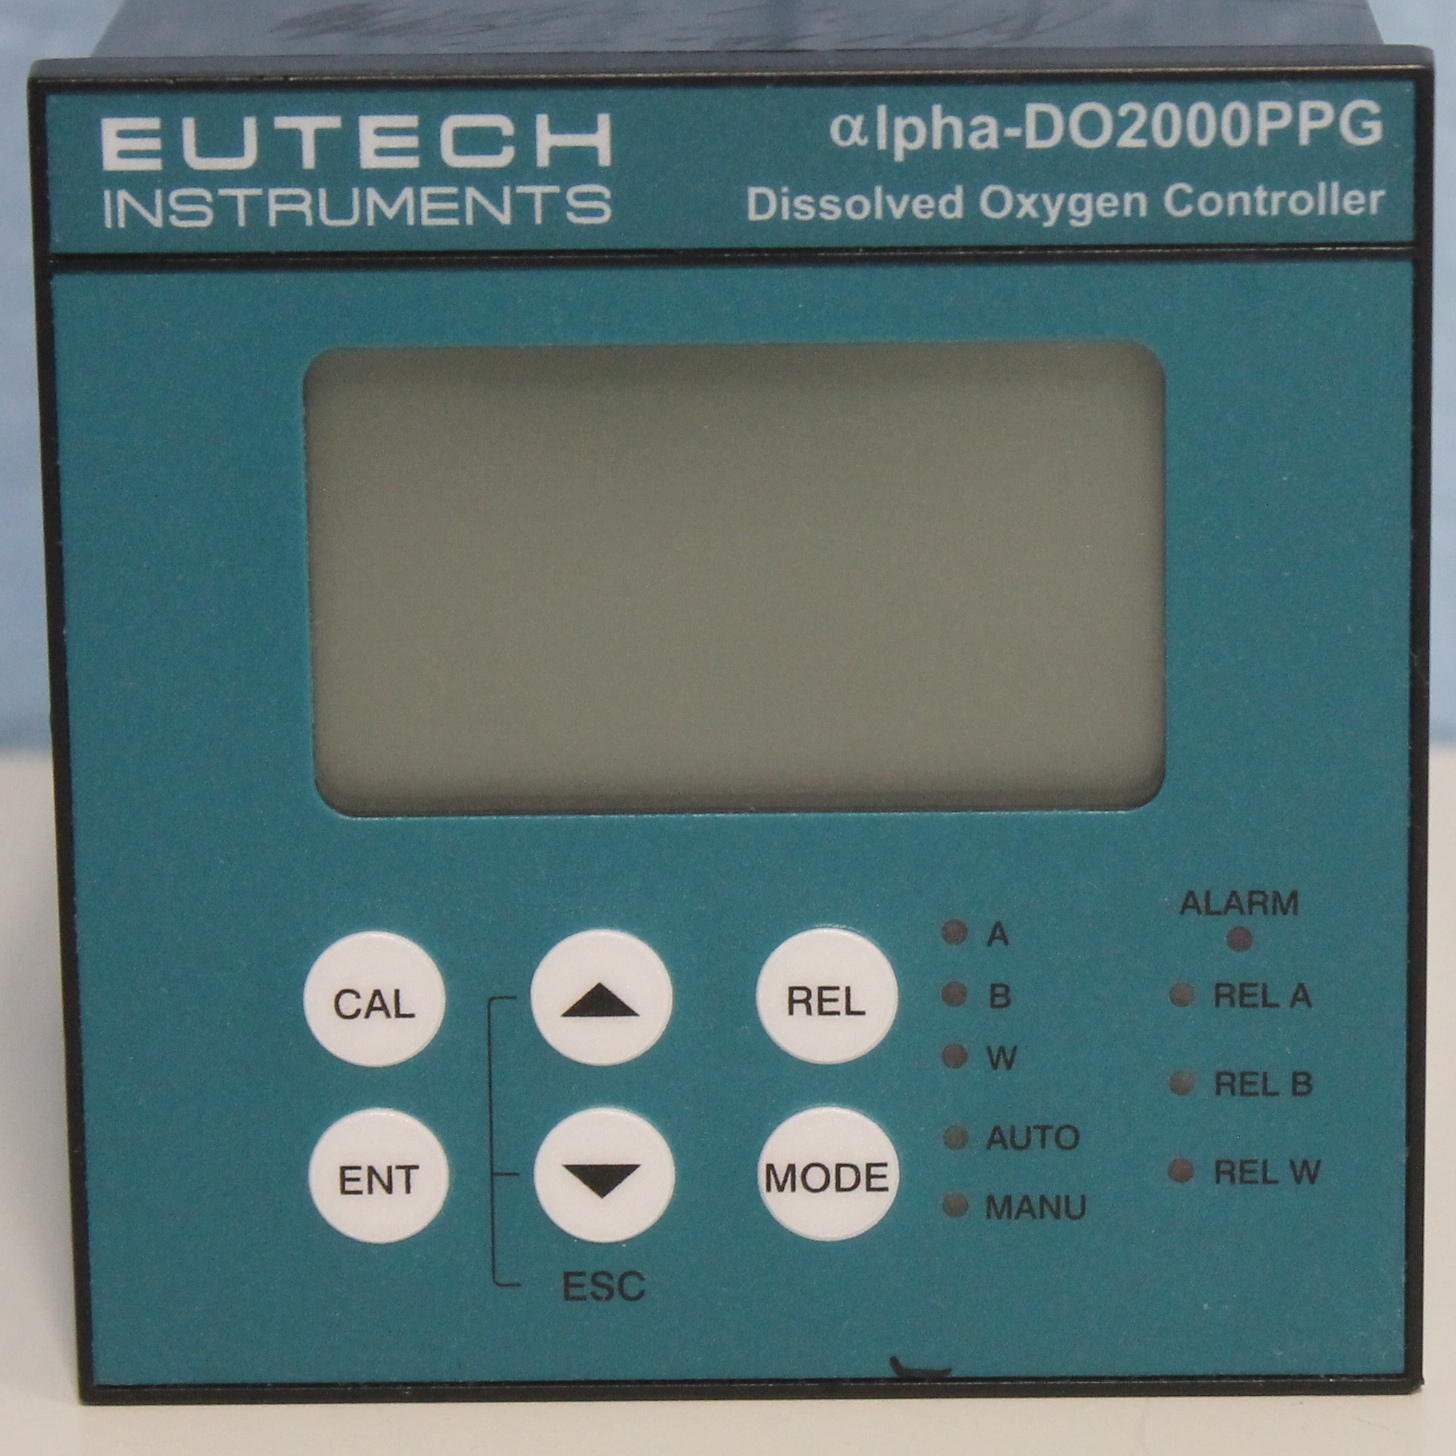 Eutech Instruments DO 2000 Polarographic Dissolved Oxygen Controller, 1/4-DIN, 80 to 250 Image